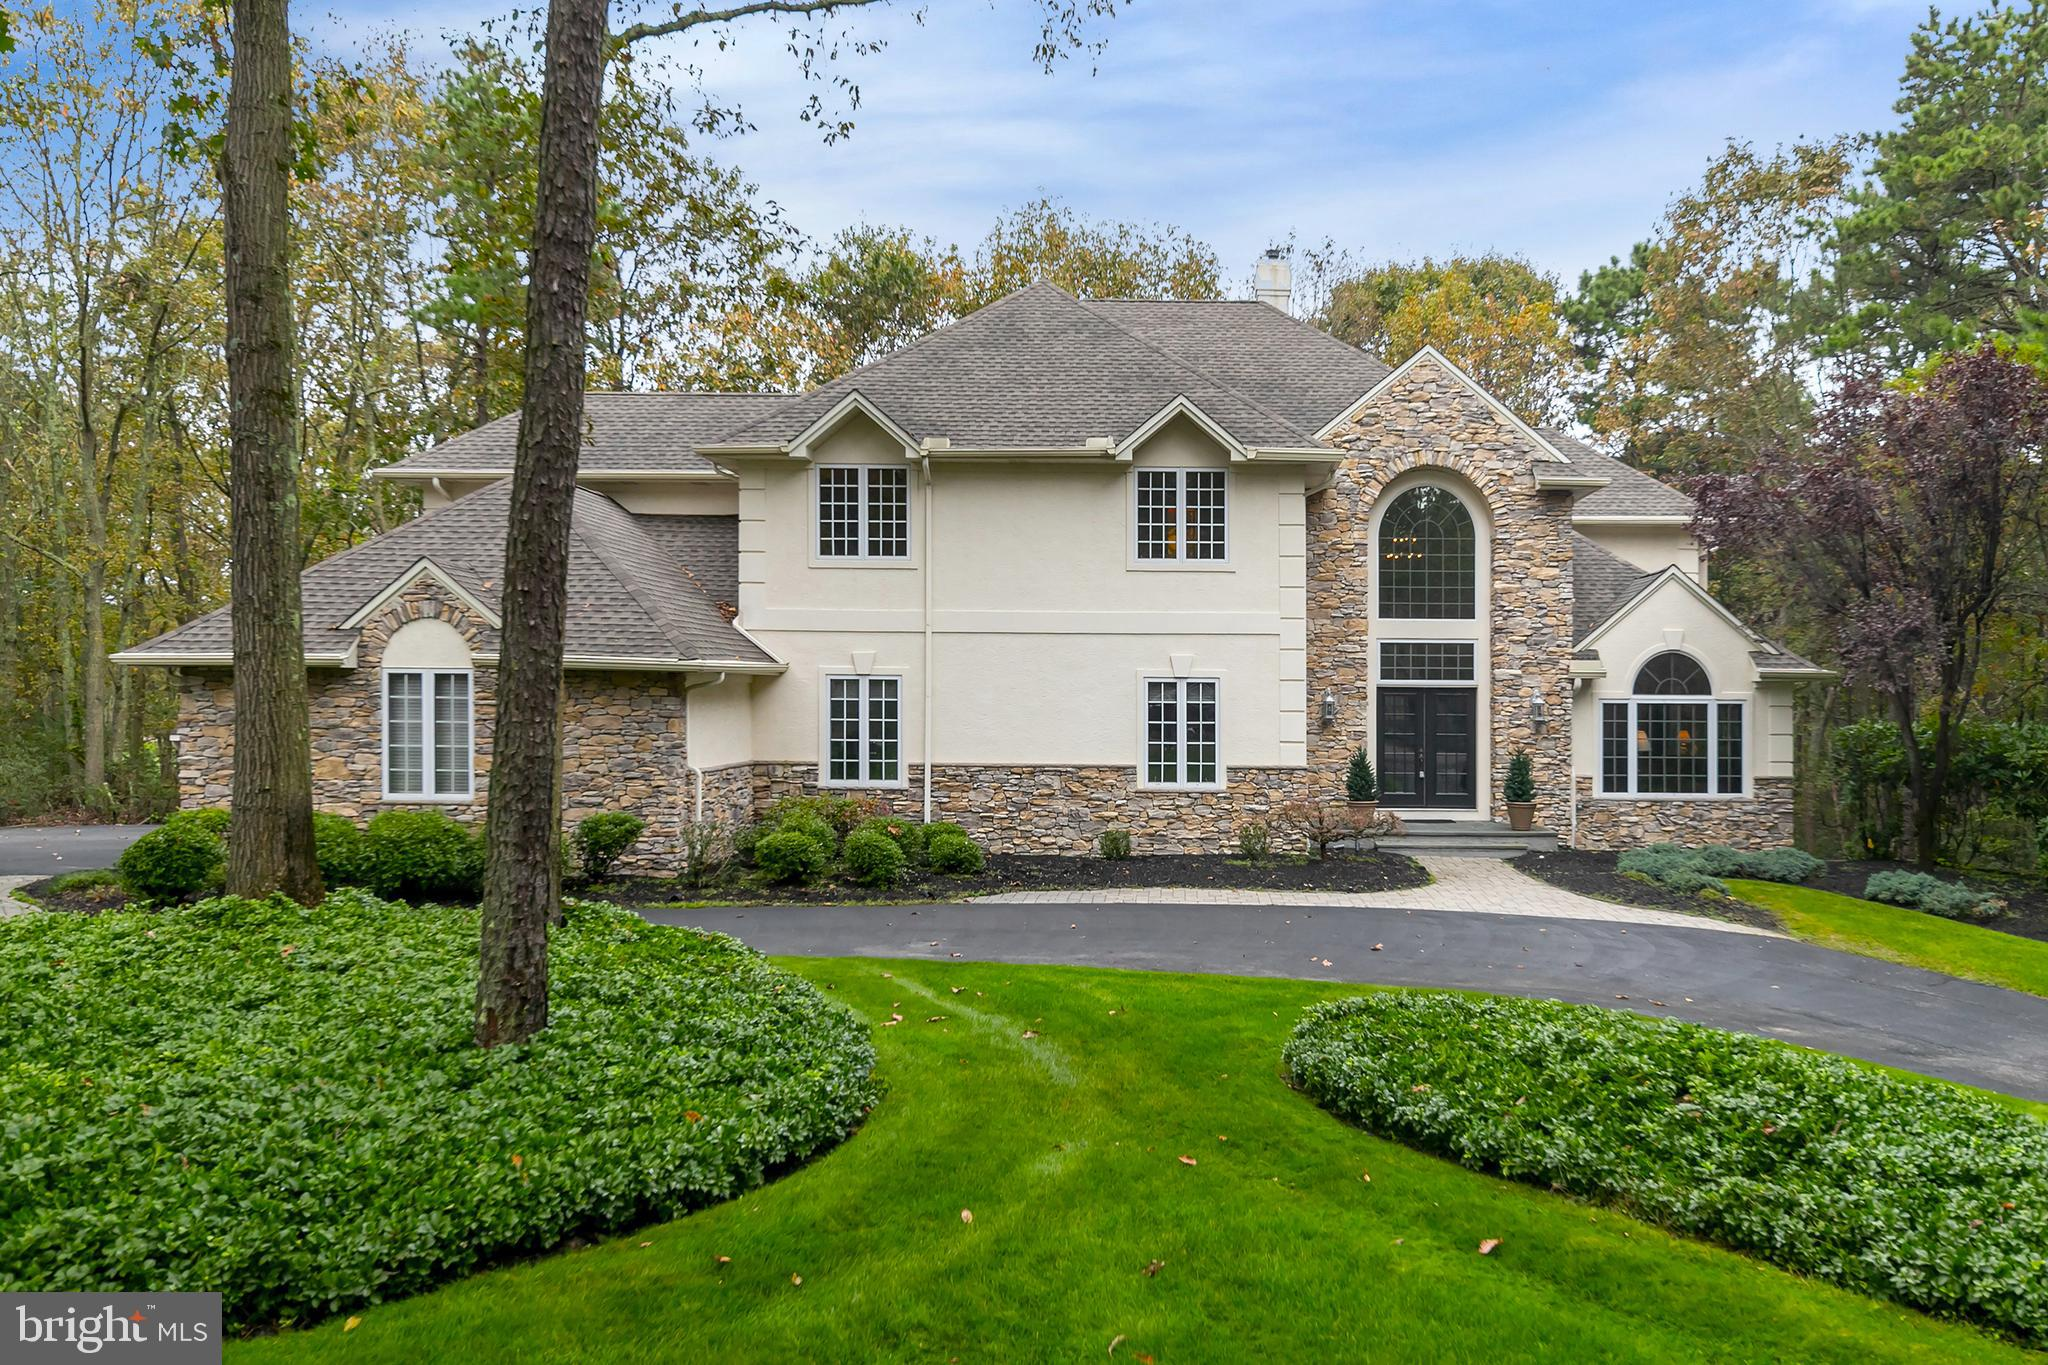 7 SLAB BRANCH COURT, MARLTON, NJ 08053